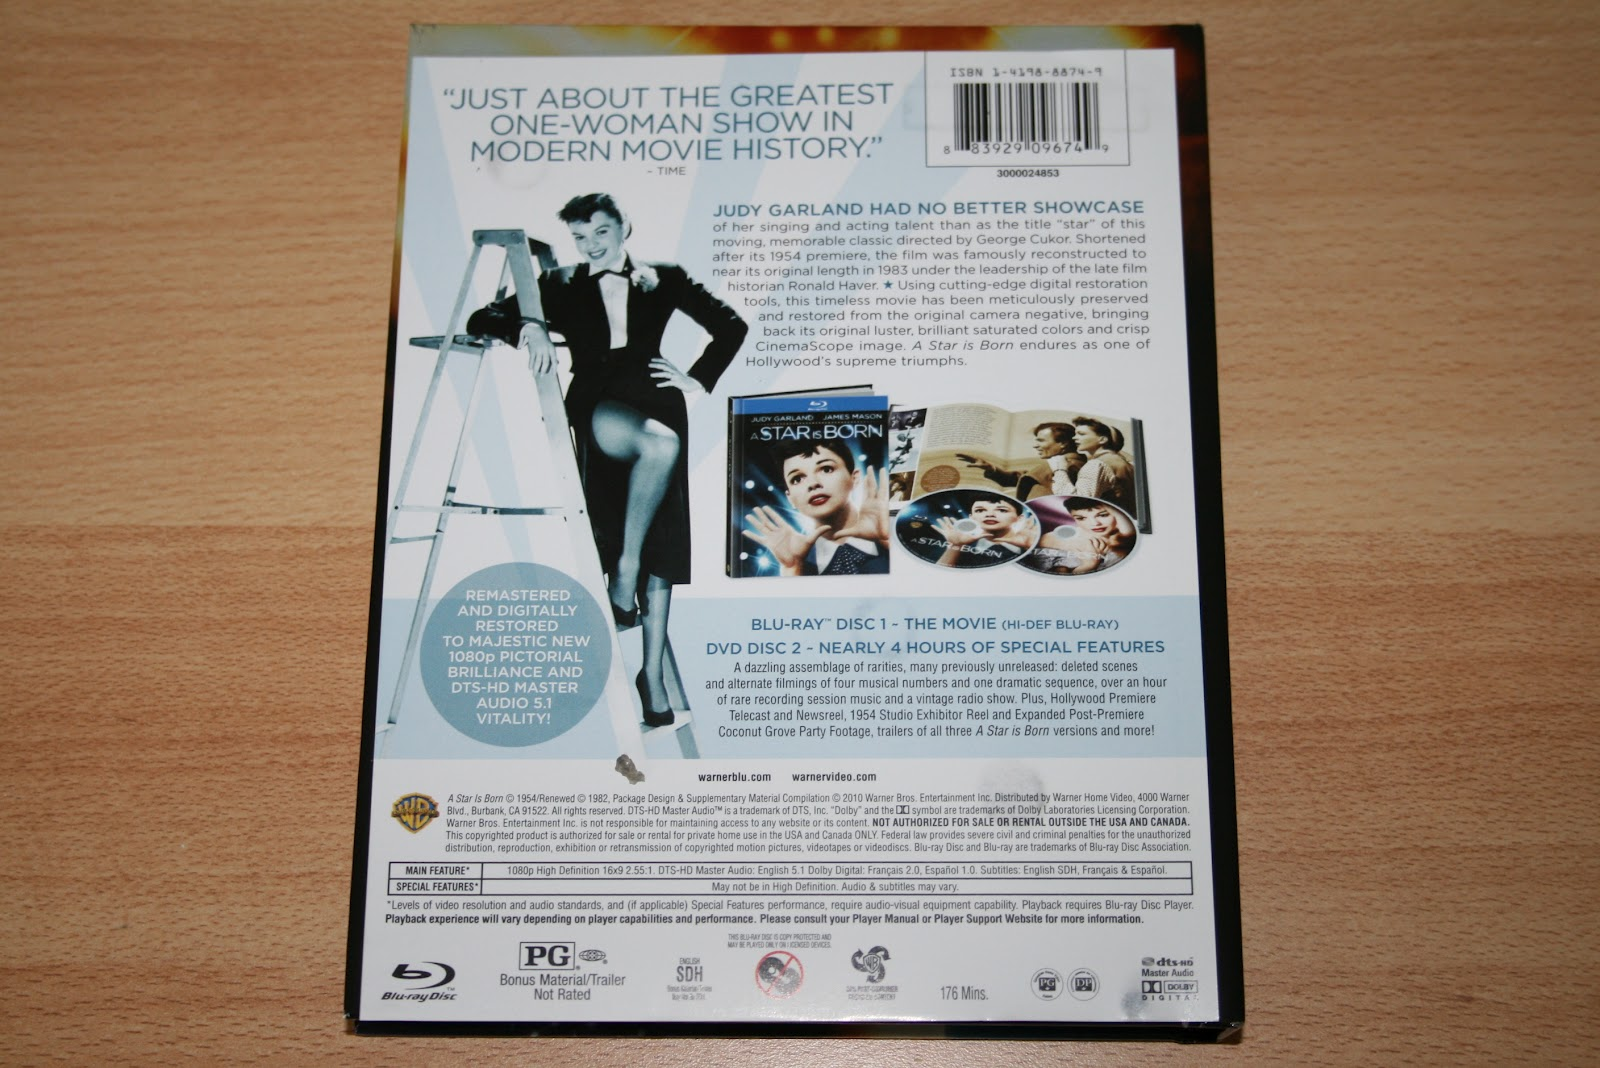 Release country & date: the US, 2010. Region: Region Free Num. of discs: 1 BD + 1 DVD Packaging notes: digibook. Numbered: no. Additional notes: N/A